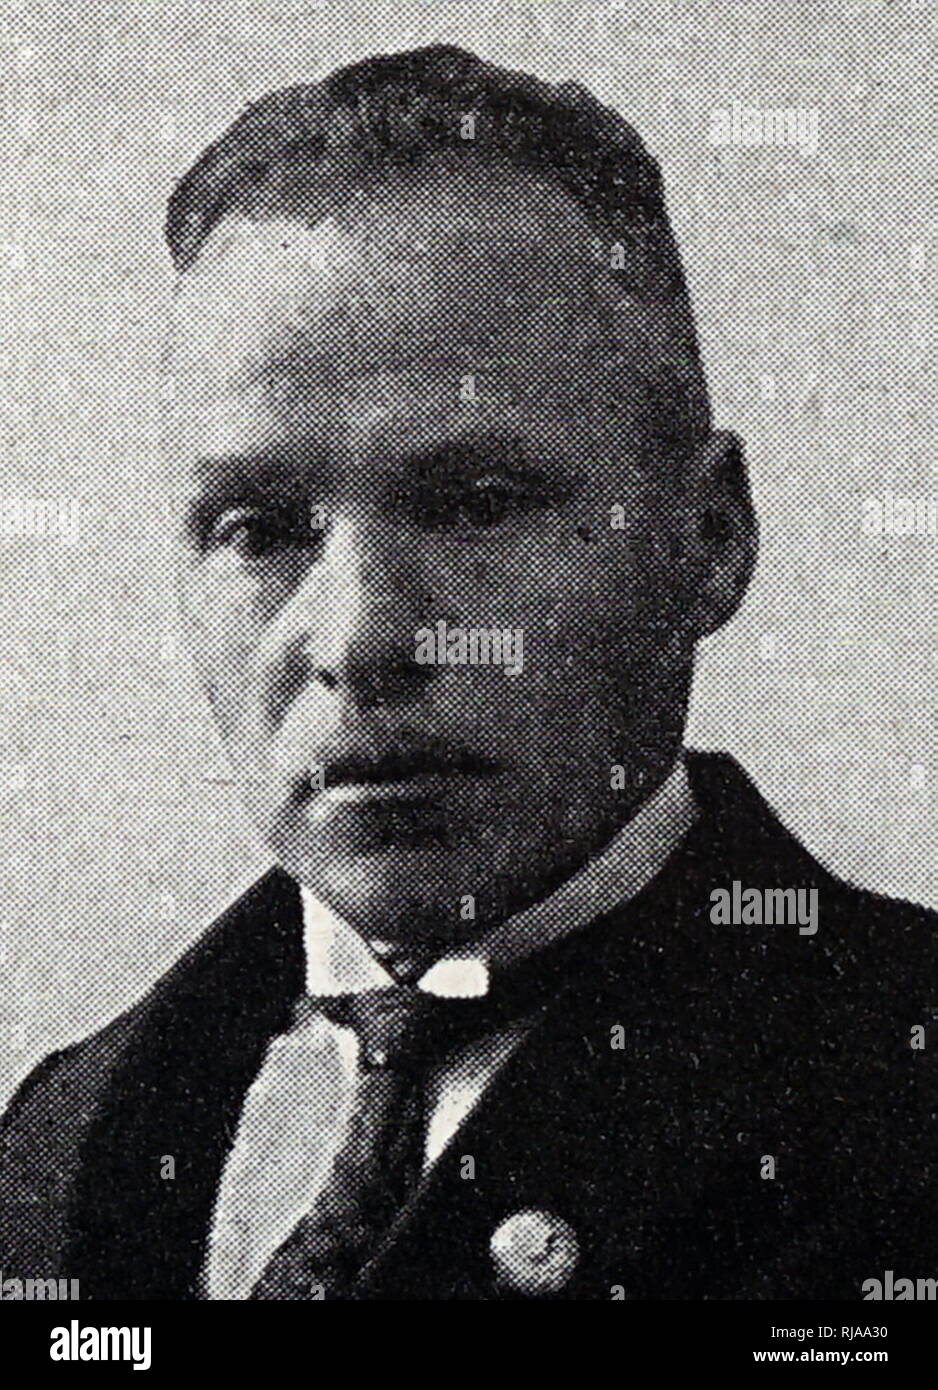 A. kampmann, Athletics Official, German Olympic sports official 1936 Nazi Games in Berlin - Stock Image